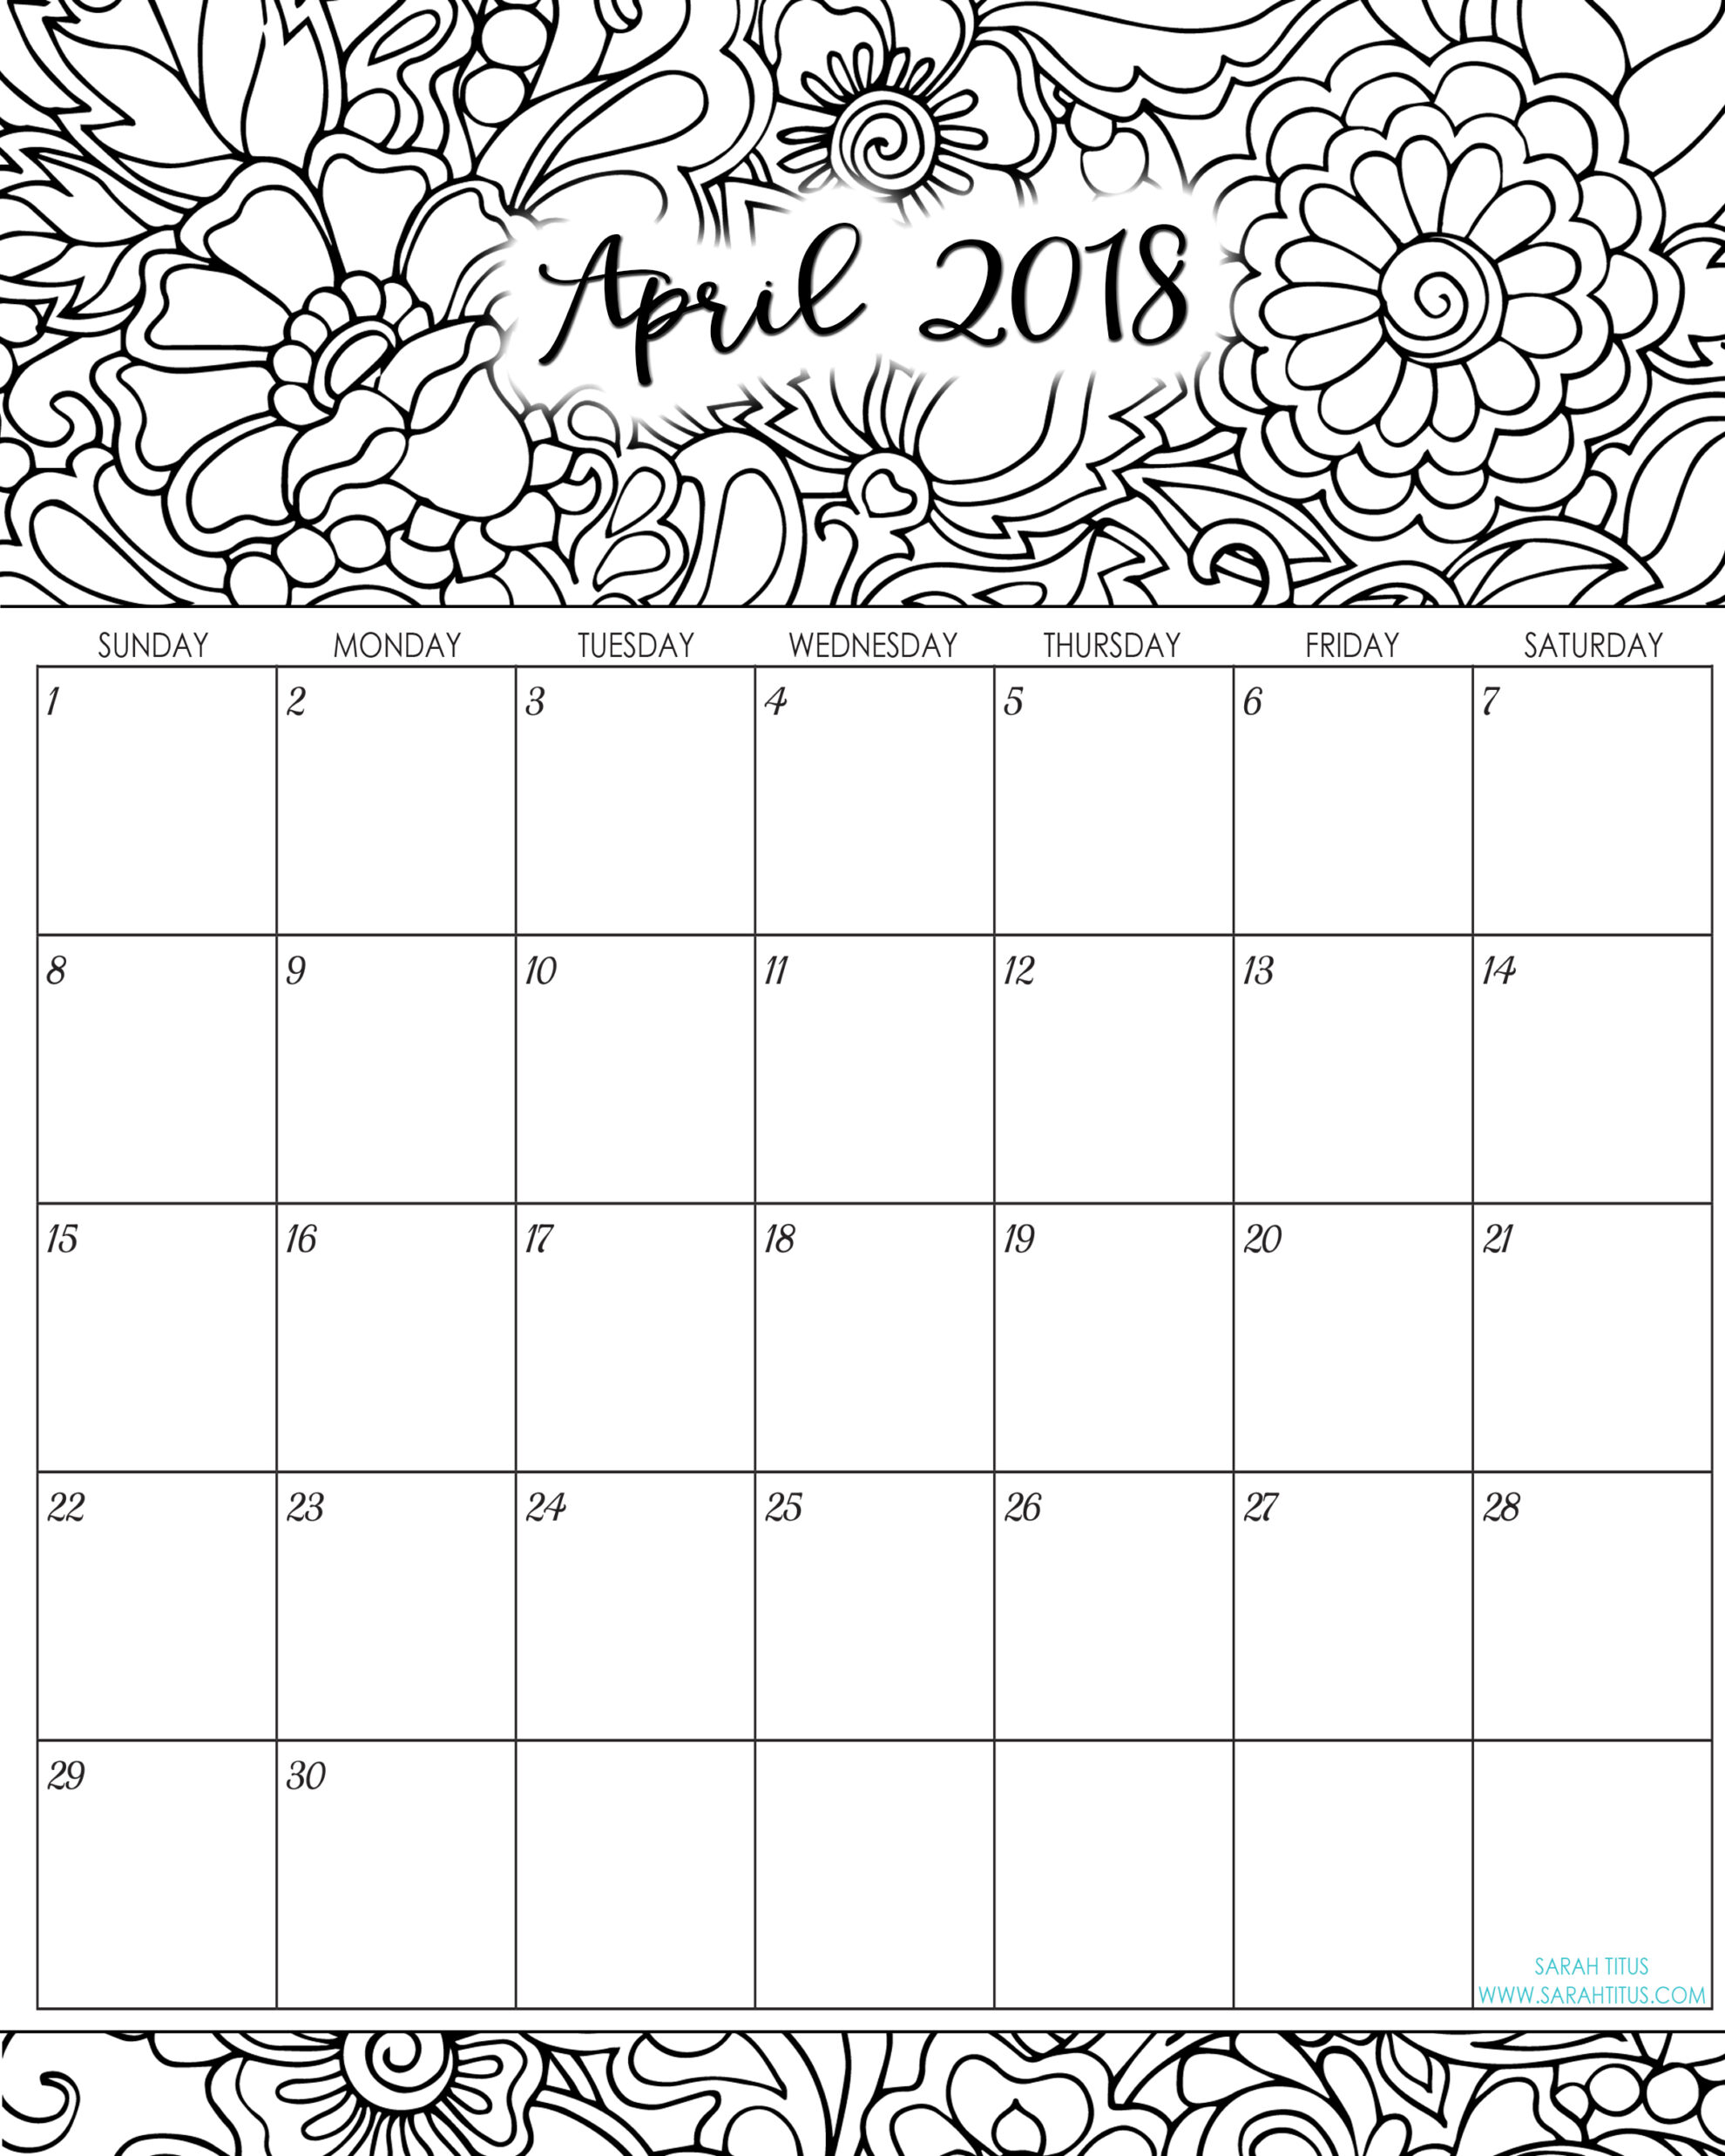 April Calendar Page : Monthly coloring calendars printables sarah titus